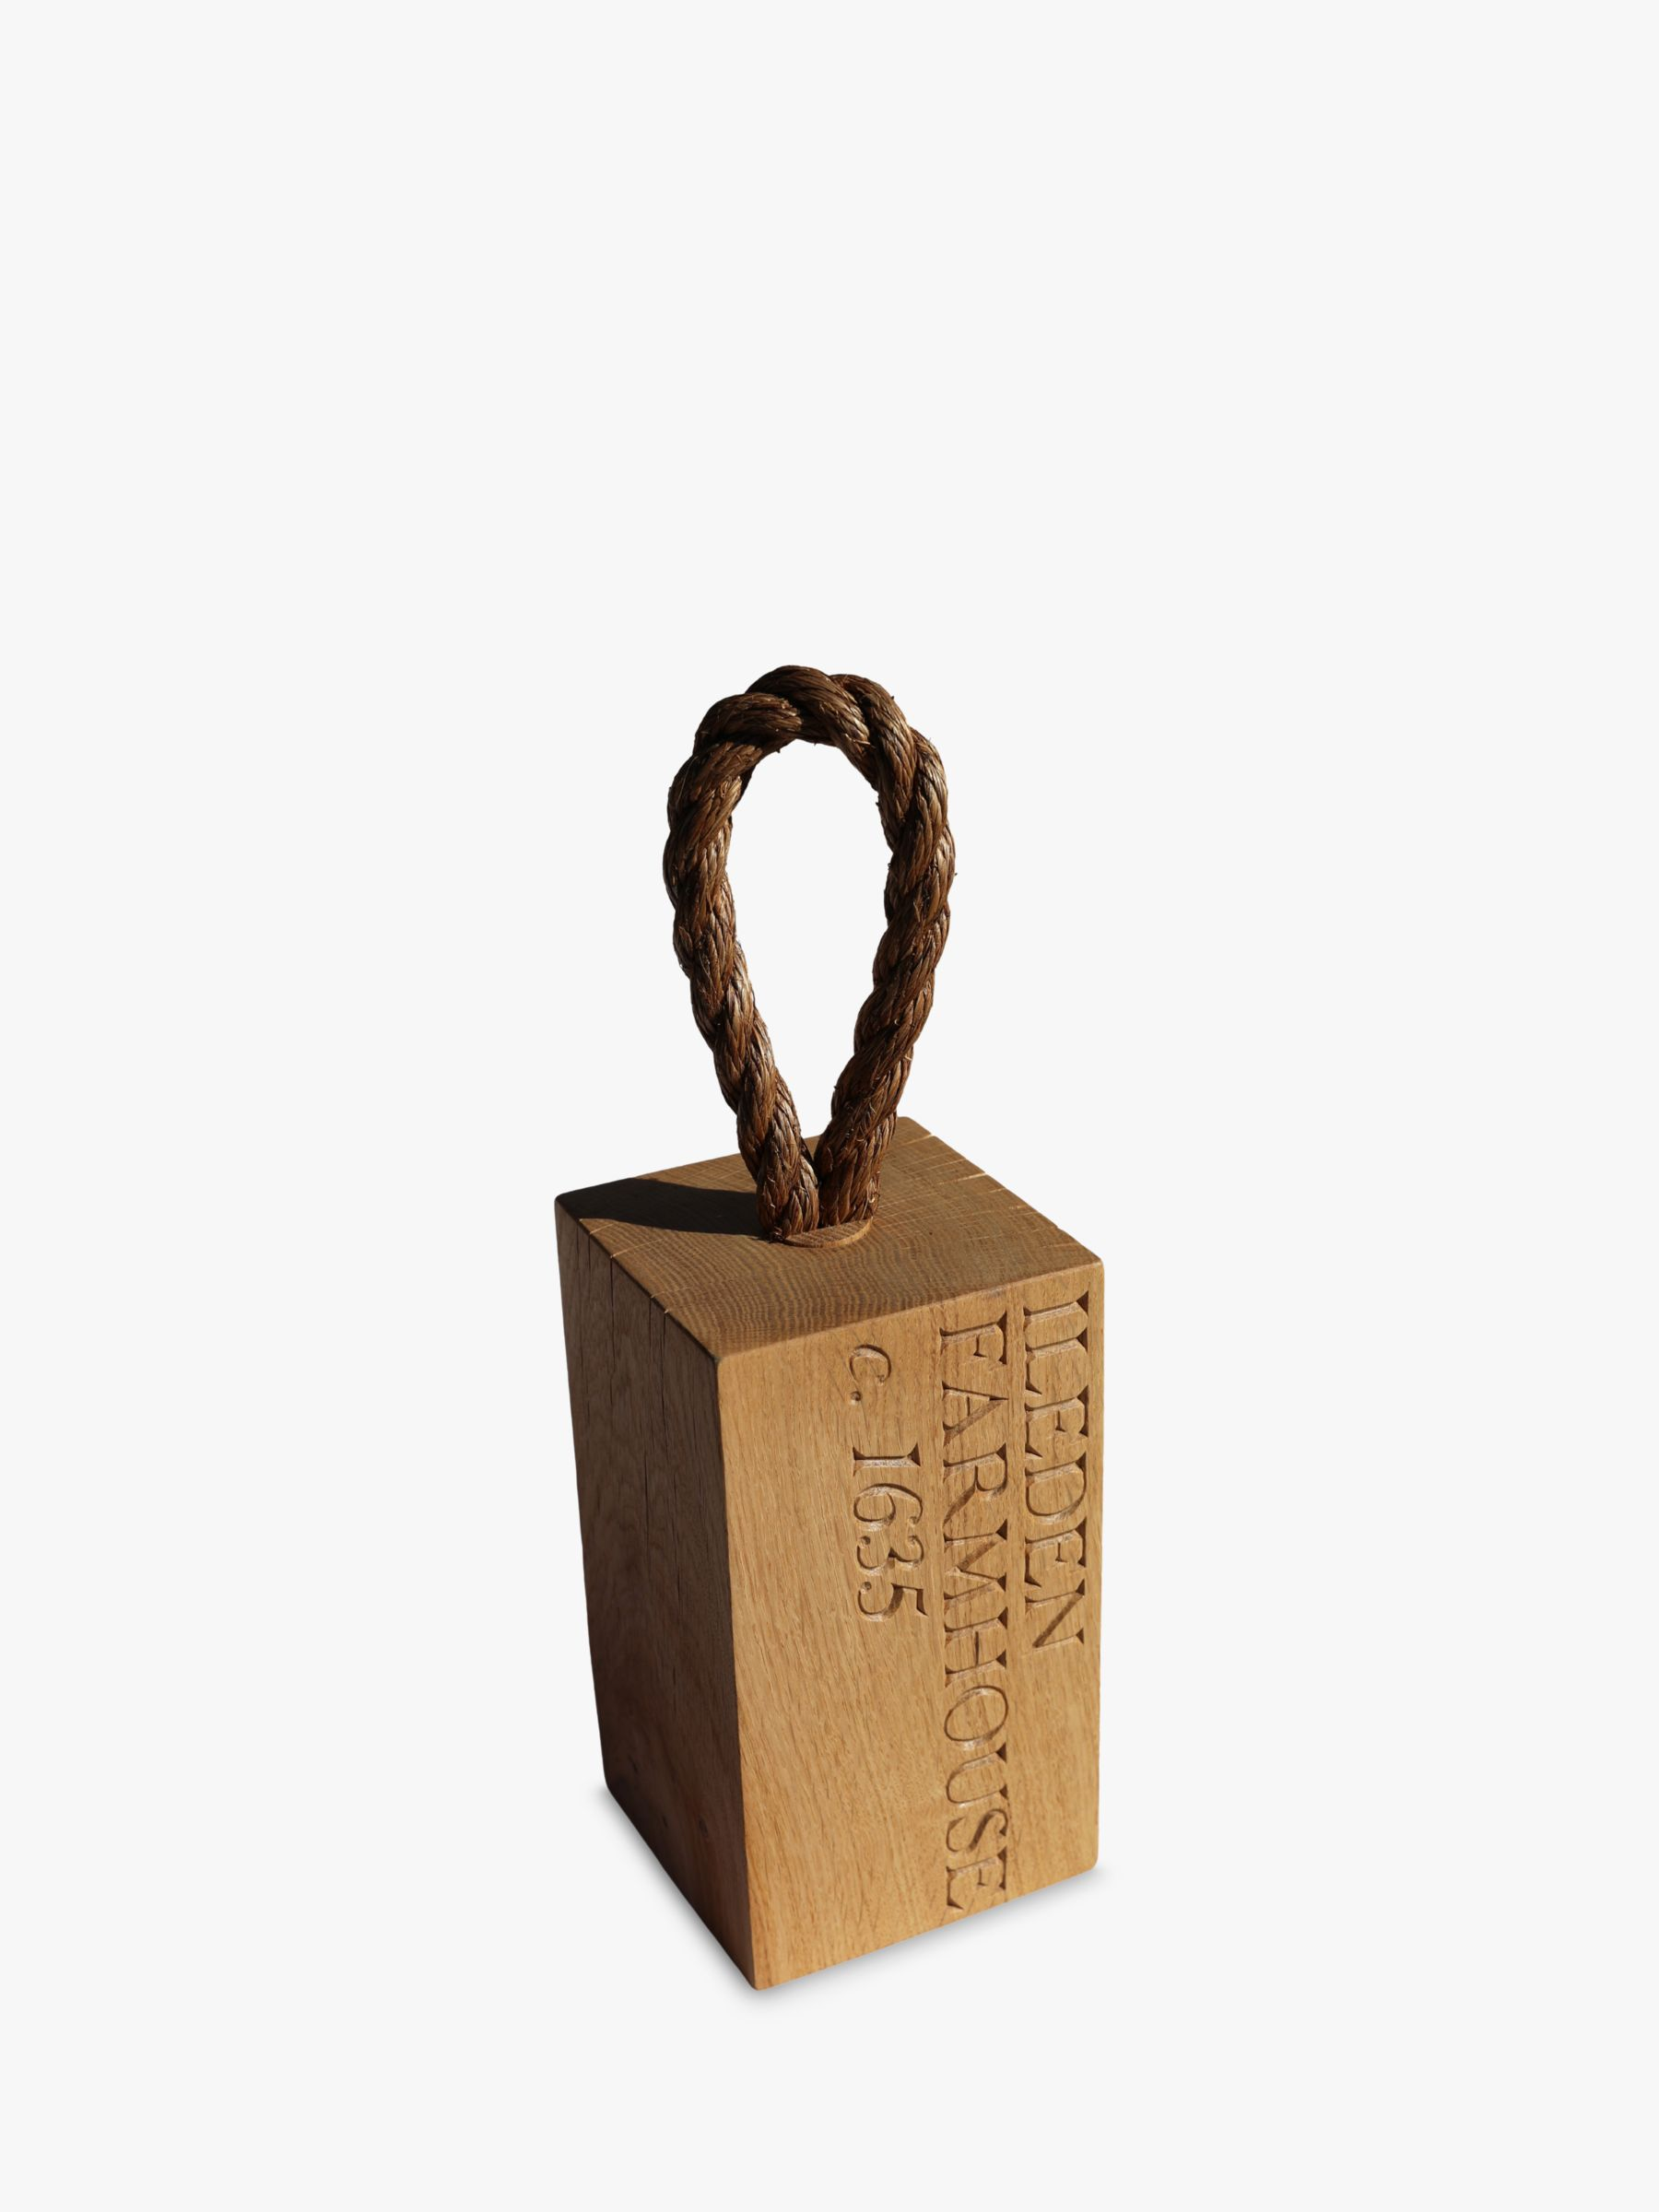 ac0be6db240a The Oak And Rope Company Personalised Oak Door Stop at John Lewis   Partners